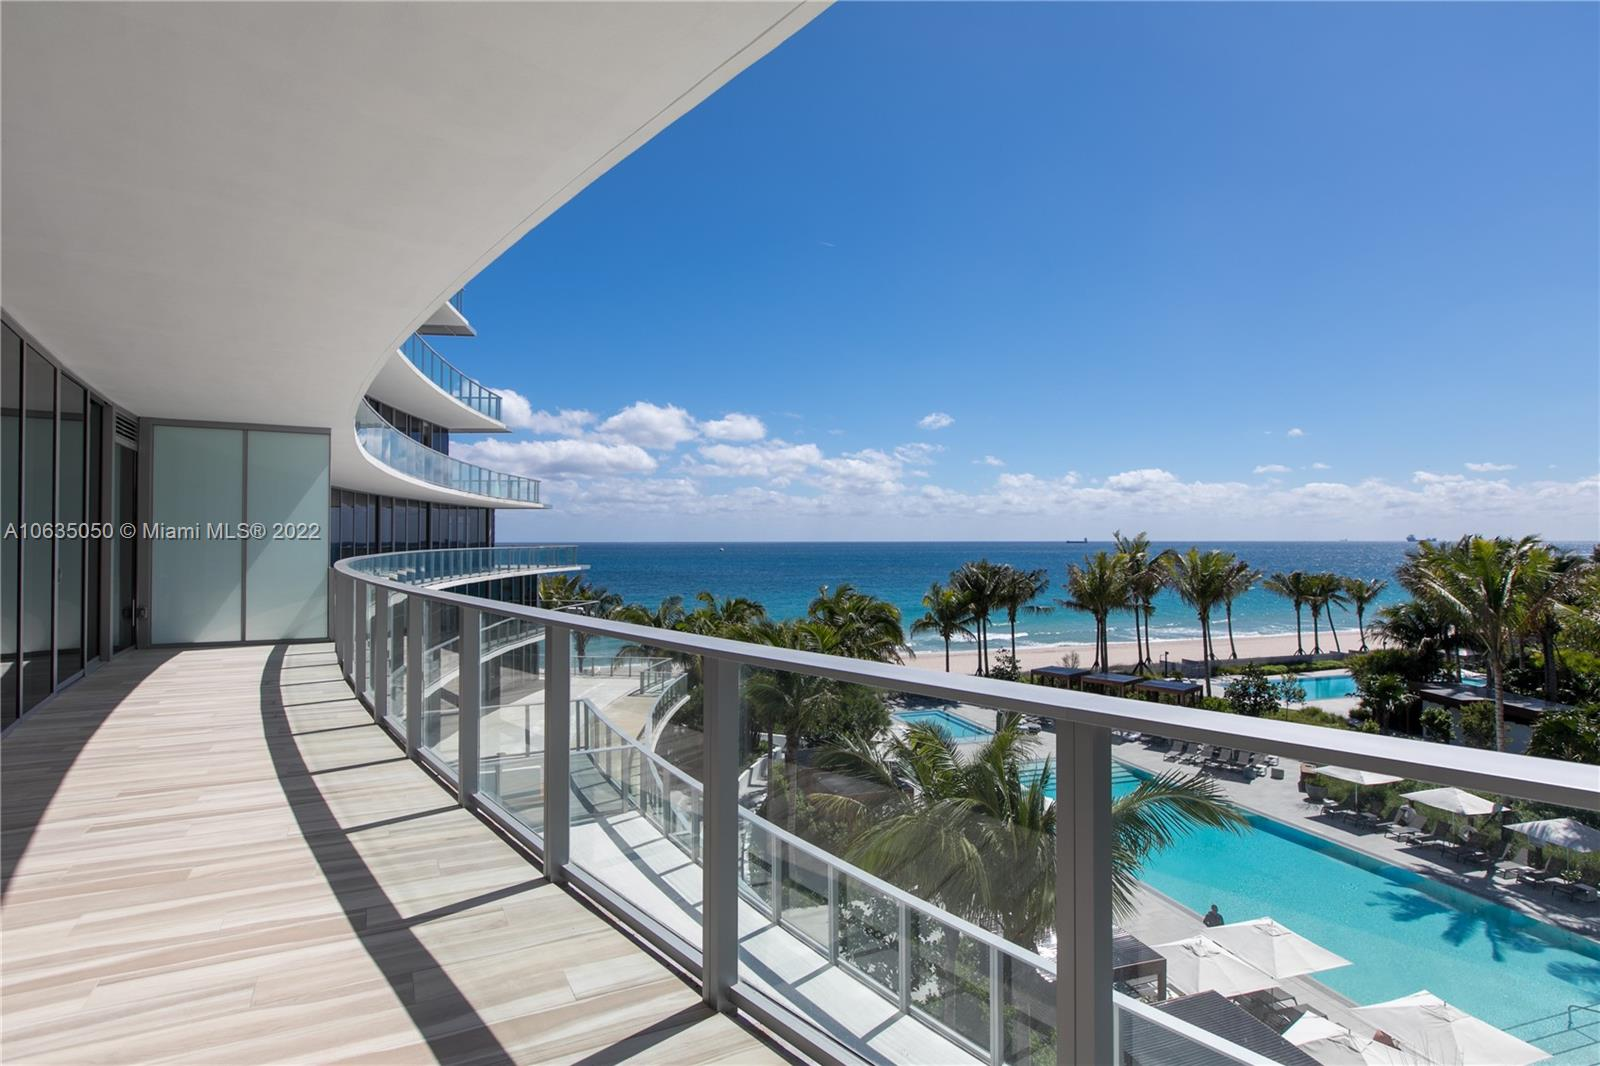 ENJOY PANORAMIC OCEAN VIEWS from this unique & fully turn-key 2 Bedroom | 2.5 Bath  exclusive residence with private foyer entrance. Custom design finishes include lighting, porcelain flooring, motorized shades, blackouts in bedrooms,  finished closets, architectural elements, linear diffusers, Italkraft white and espresso cabinetry, Sub Zero and Wolf appliances including Wolf gas stove & coffee/cappuccino maker, Sub-zero wine cooler. This residence has one of the most sought after floor plans maximizing space, privacy and flow. Professionally designed with  Italian furnishings to bestow an elegant and minimalistic style. Perfectly located on 450 Ft. of Atlantic Ocean beachfront.